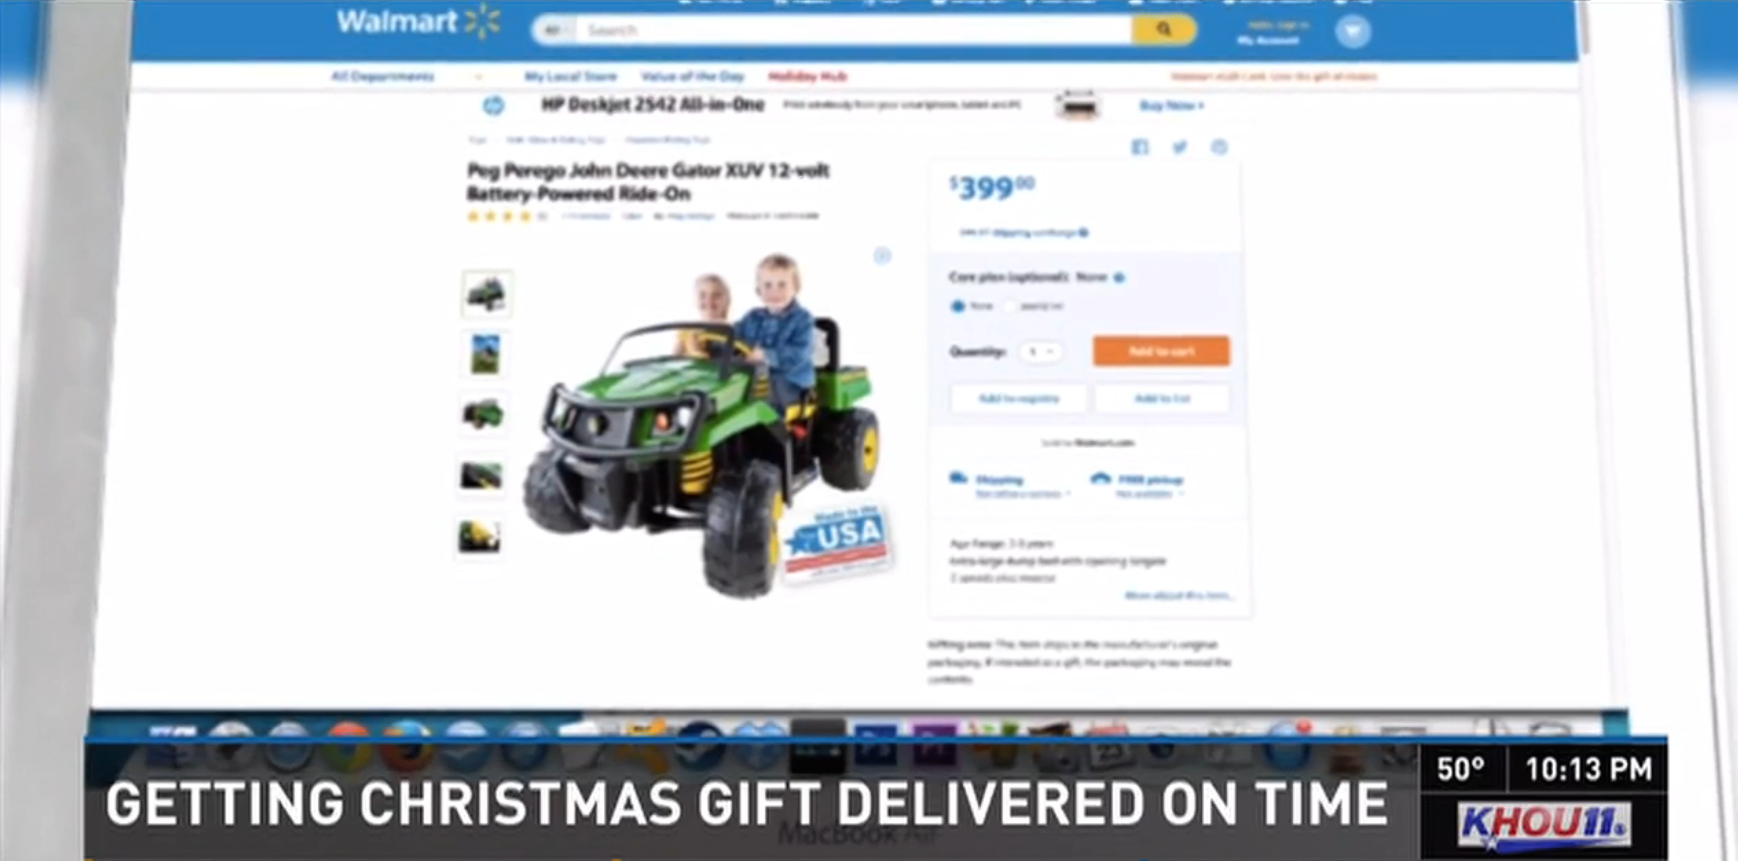 Walmart Loses Customer's Black Friday Order, Tells Her To Re-Order At Full Price